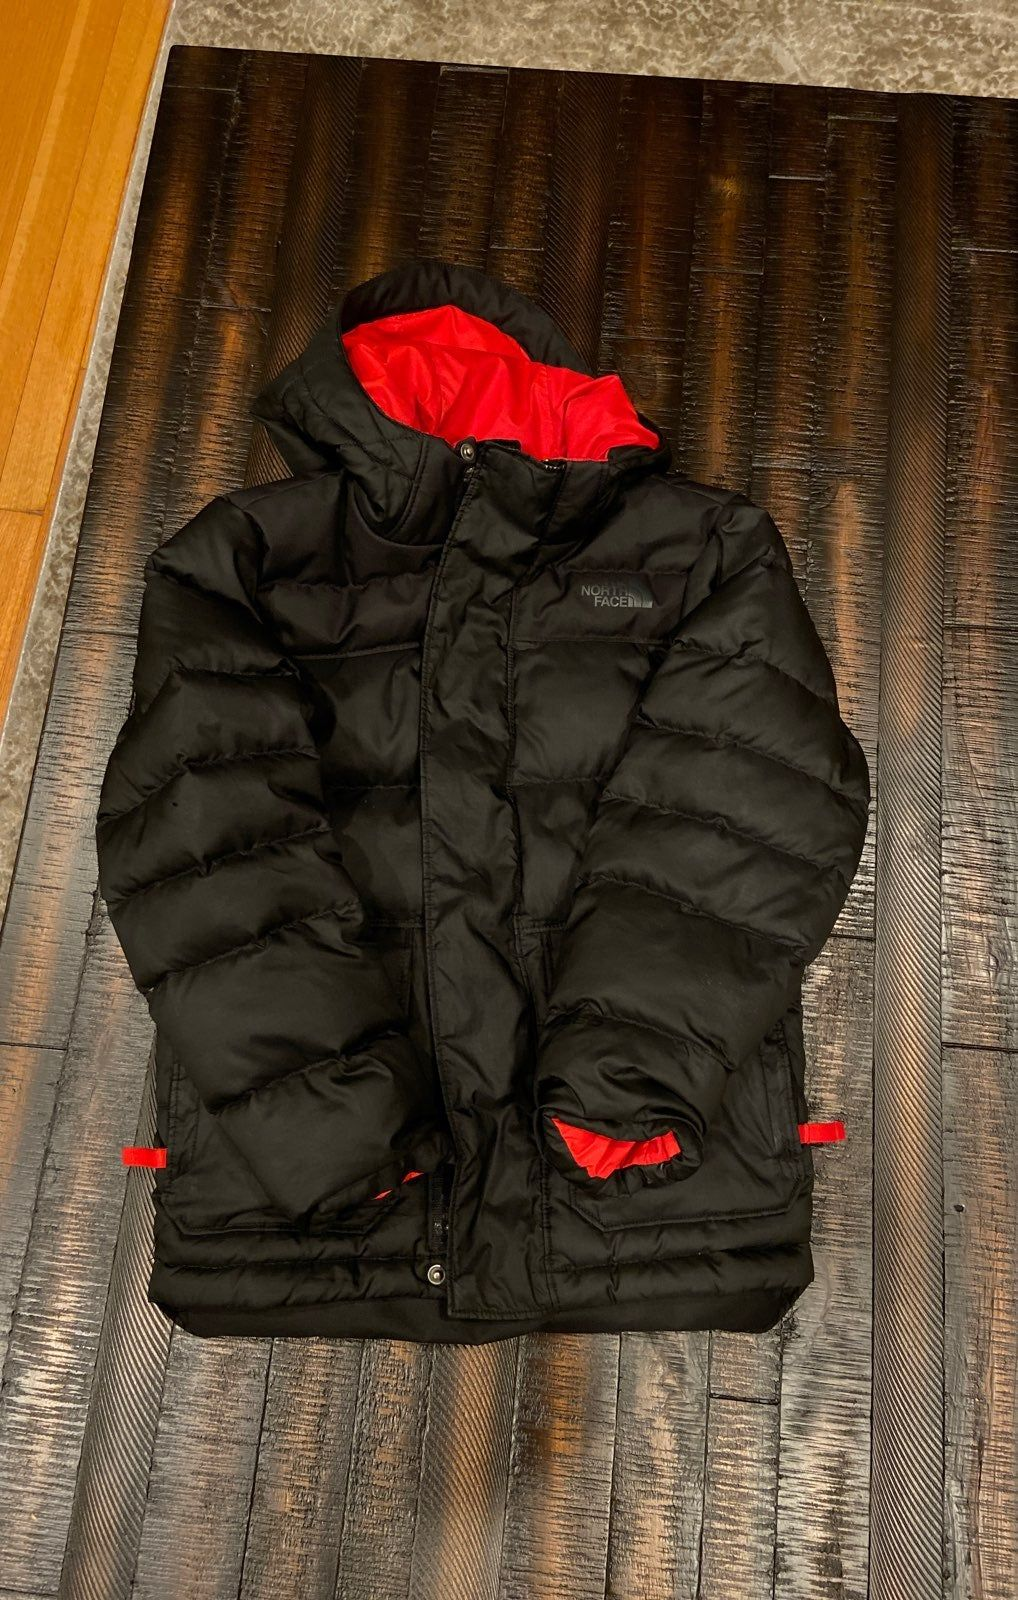 Black Puffer North Face Jacket Red Inside And Attached Hood Small 7 8 North Face Coat Black Puffer The North Face [ 1600 x 1018 Pixel ]